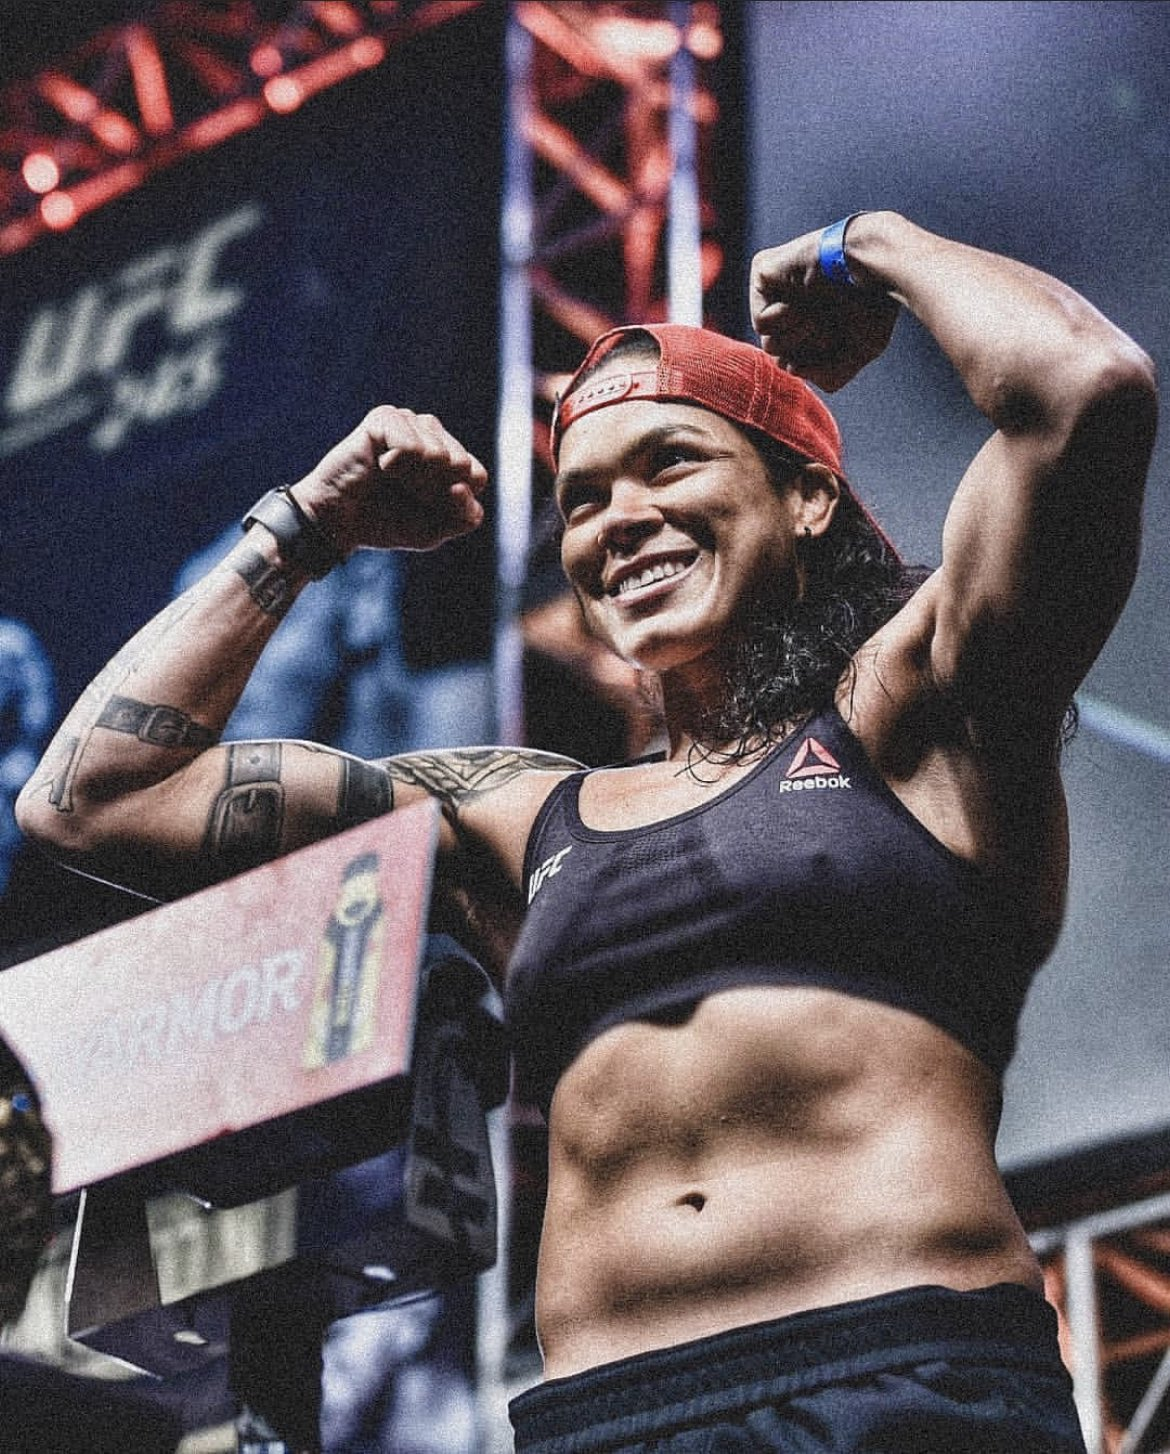 Rumour has it: UFC champ Amanda Nunes may move to WWE and here's why